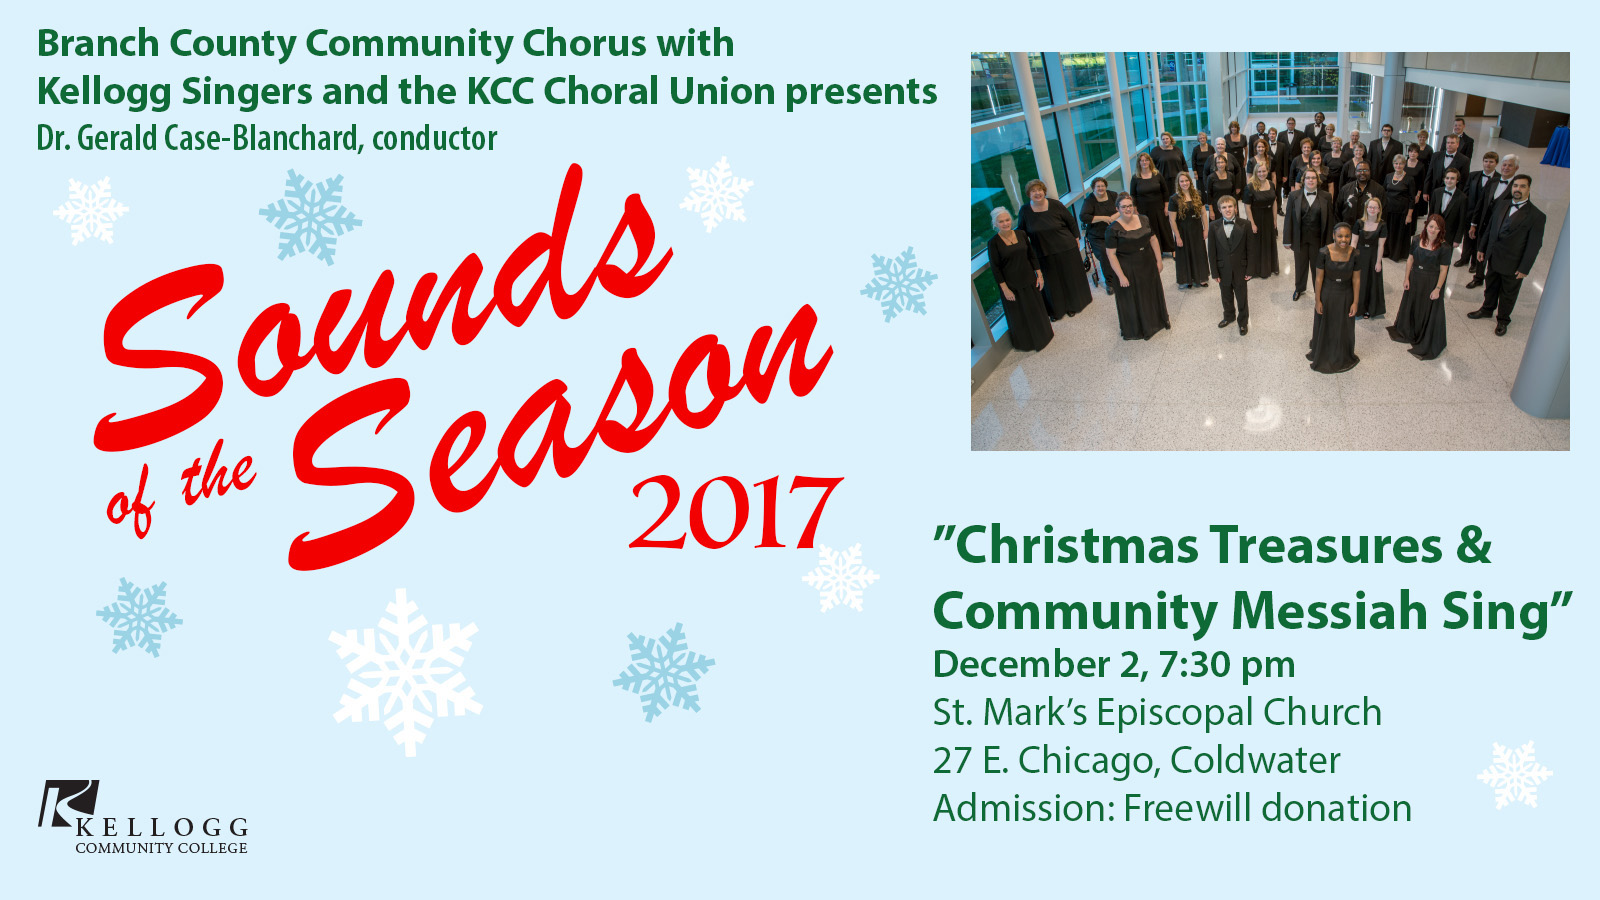 A text slide promoting KCC's Sounds of the Season concert scheduled for 7:30 p.m. Dec. 2, 2017, in Coldwater.